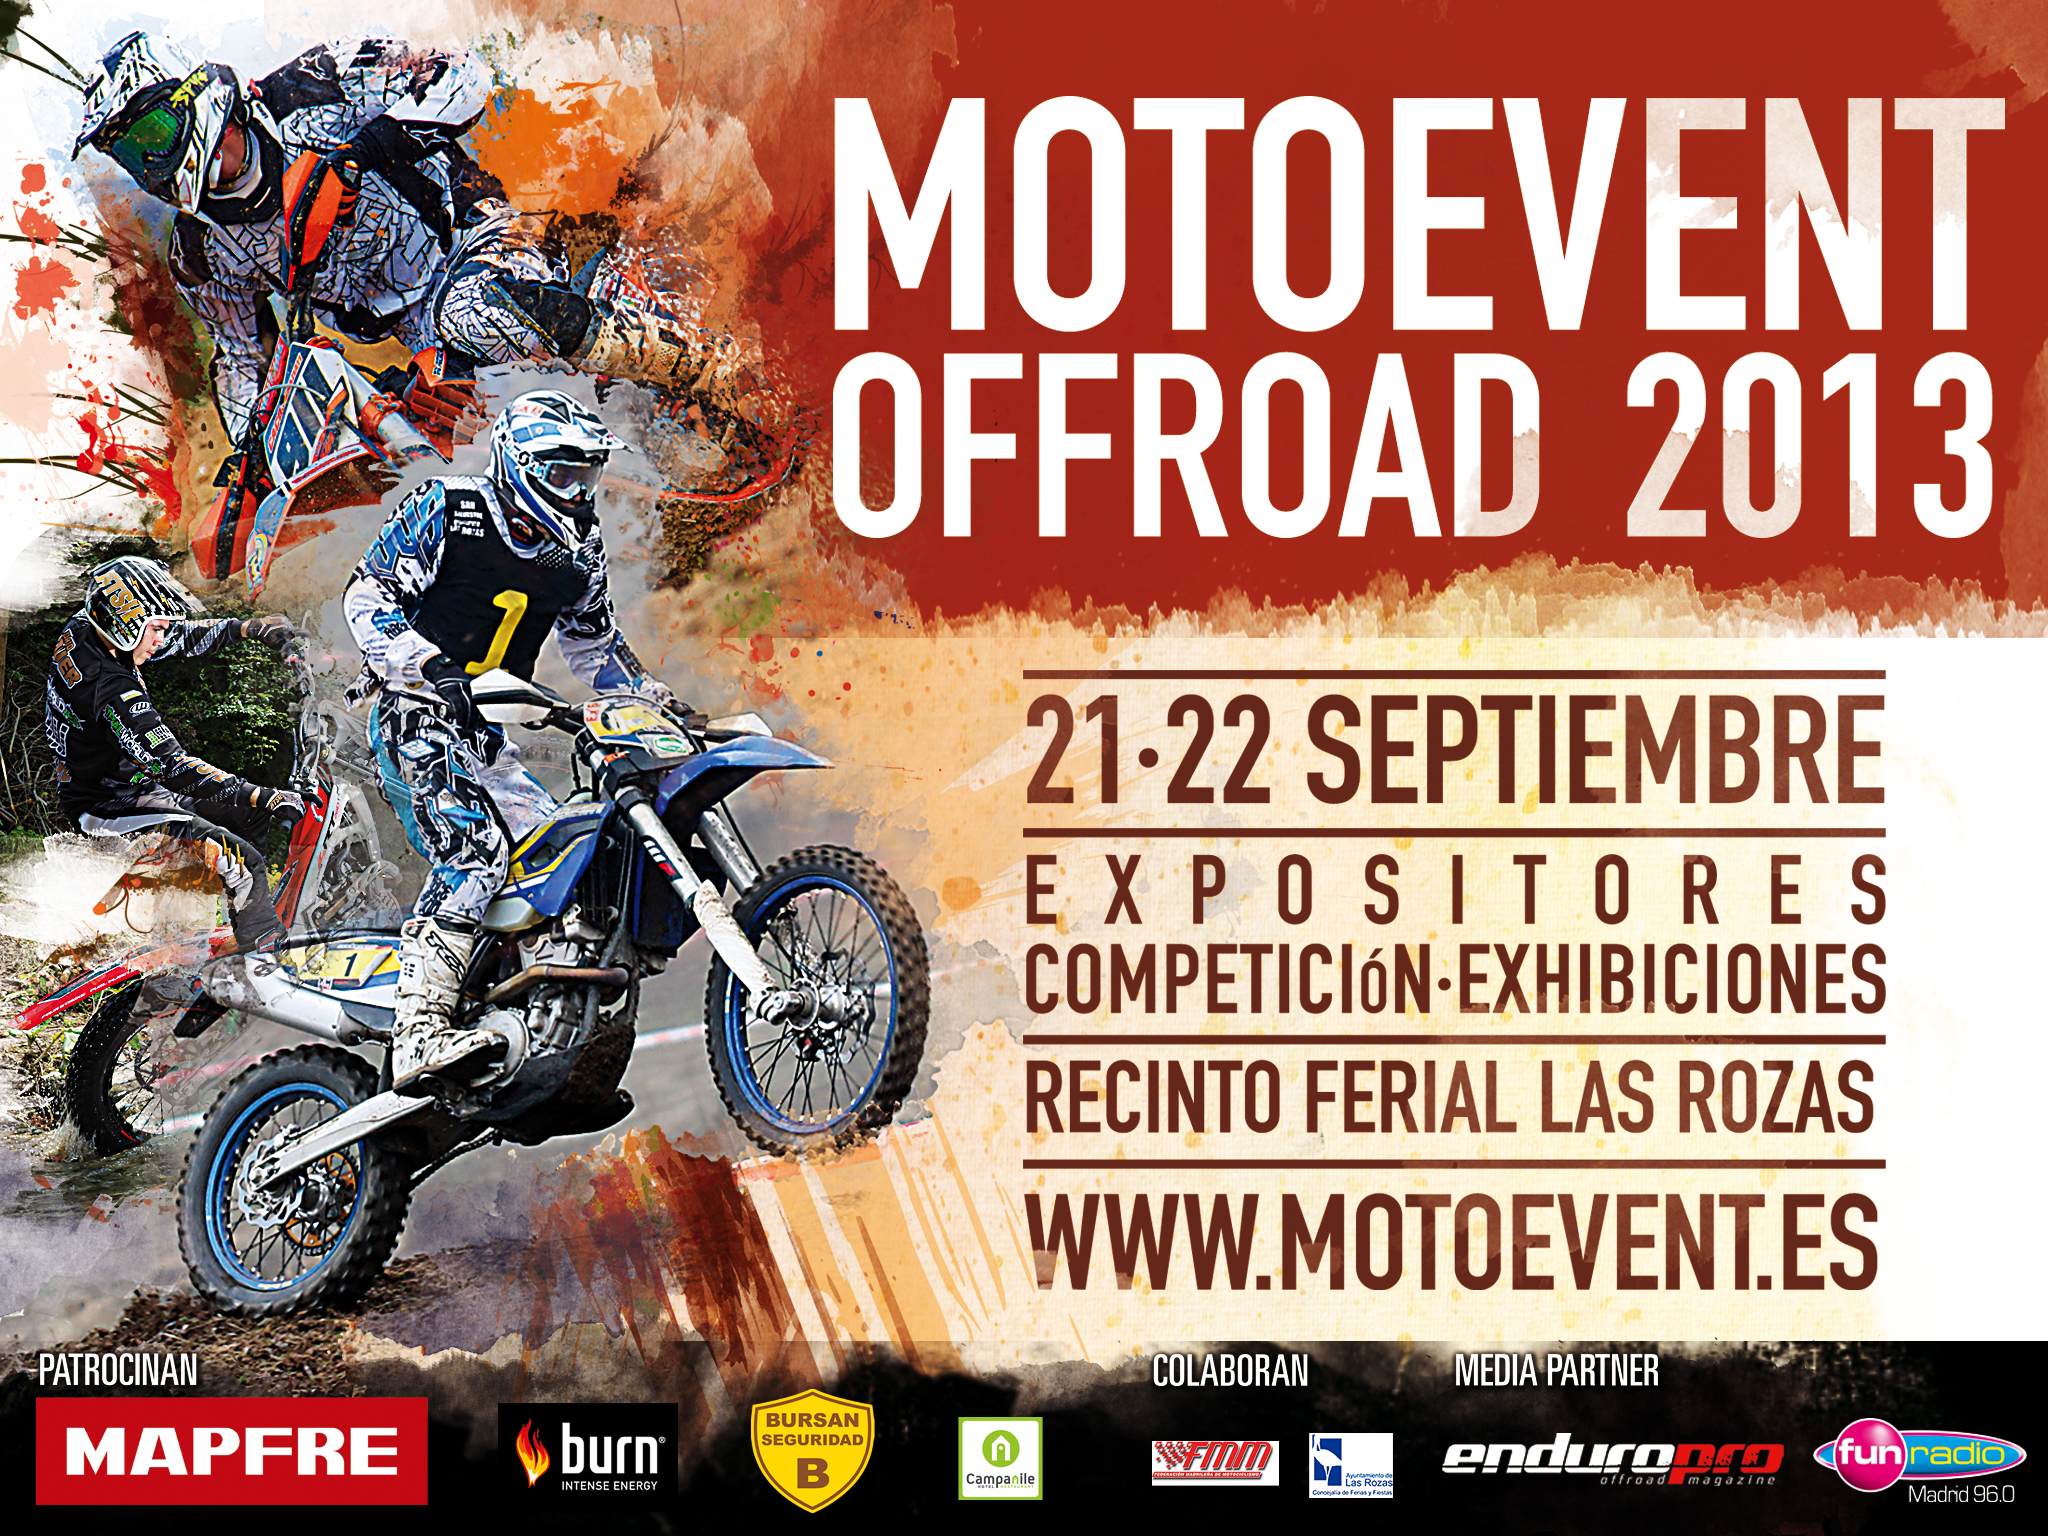 Cartel MotoEvent off road 2013